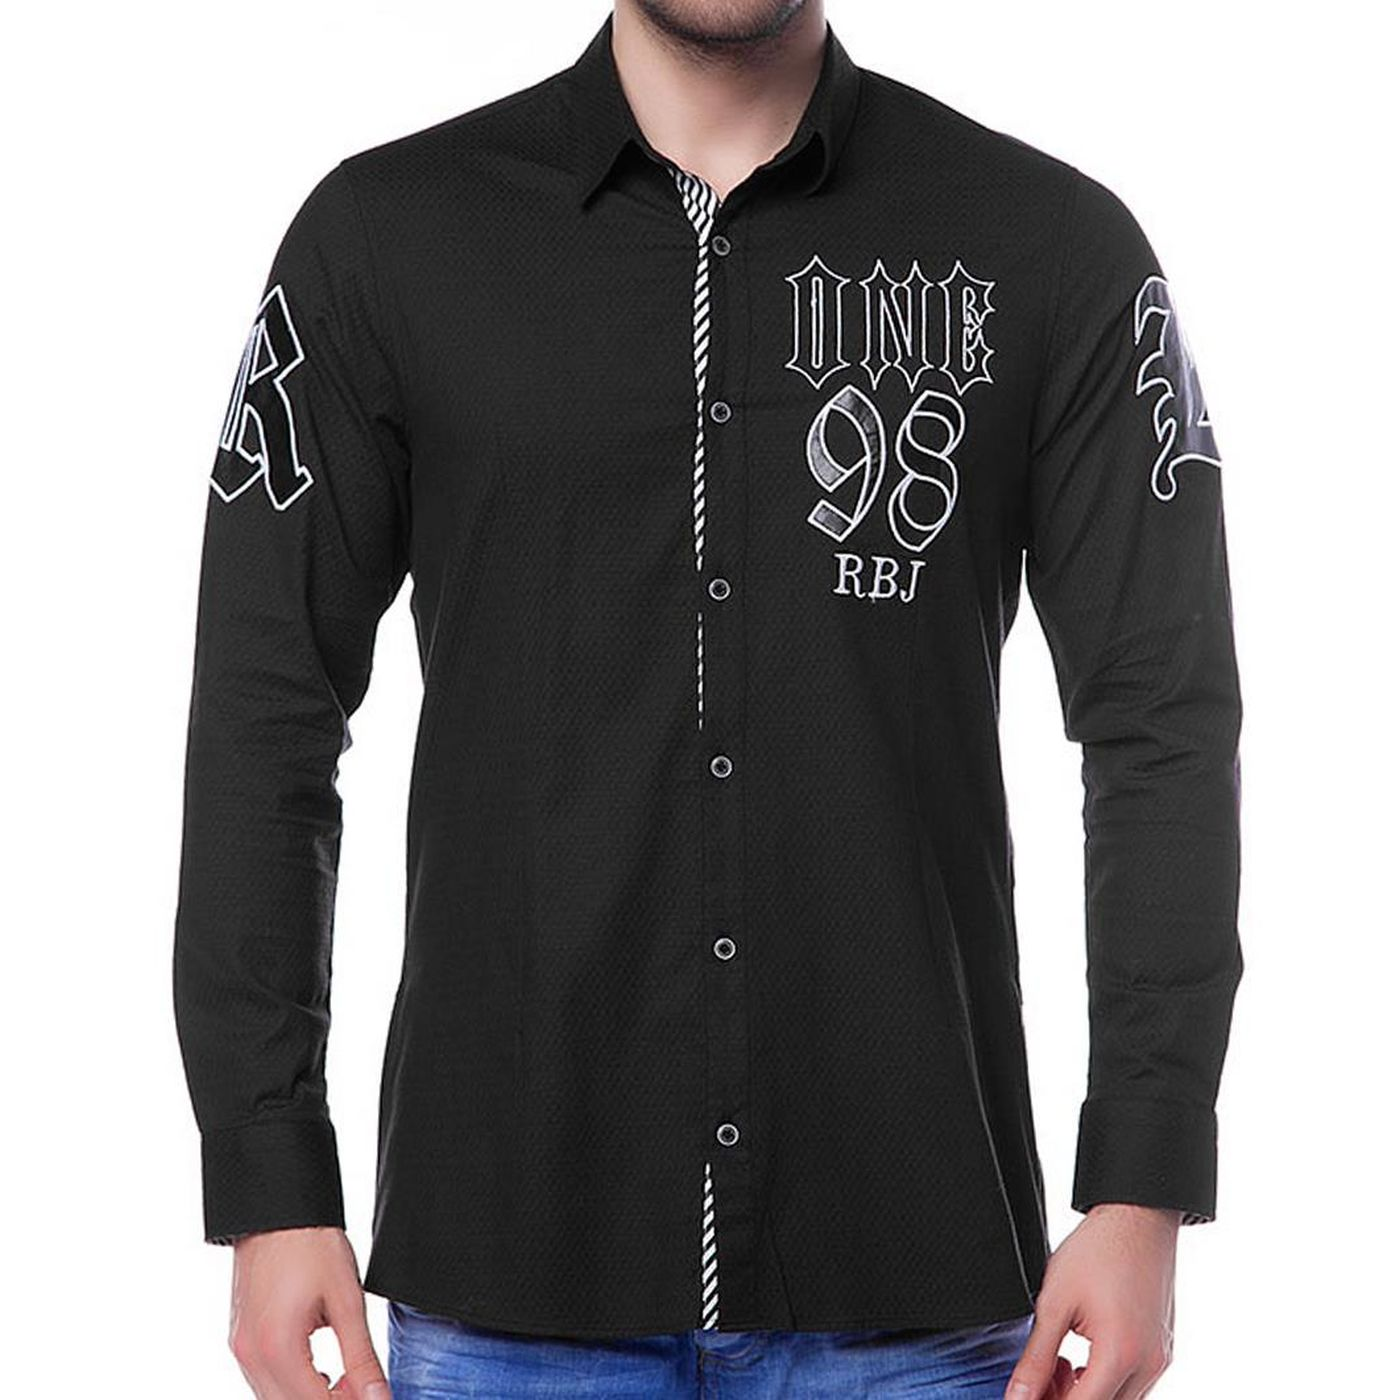 red bridge men rockabilly shirt black m5002 black 13 99. Black Bedroom Furniture Sets. Home Design Ideas